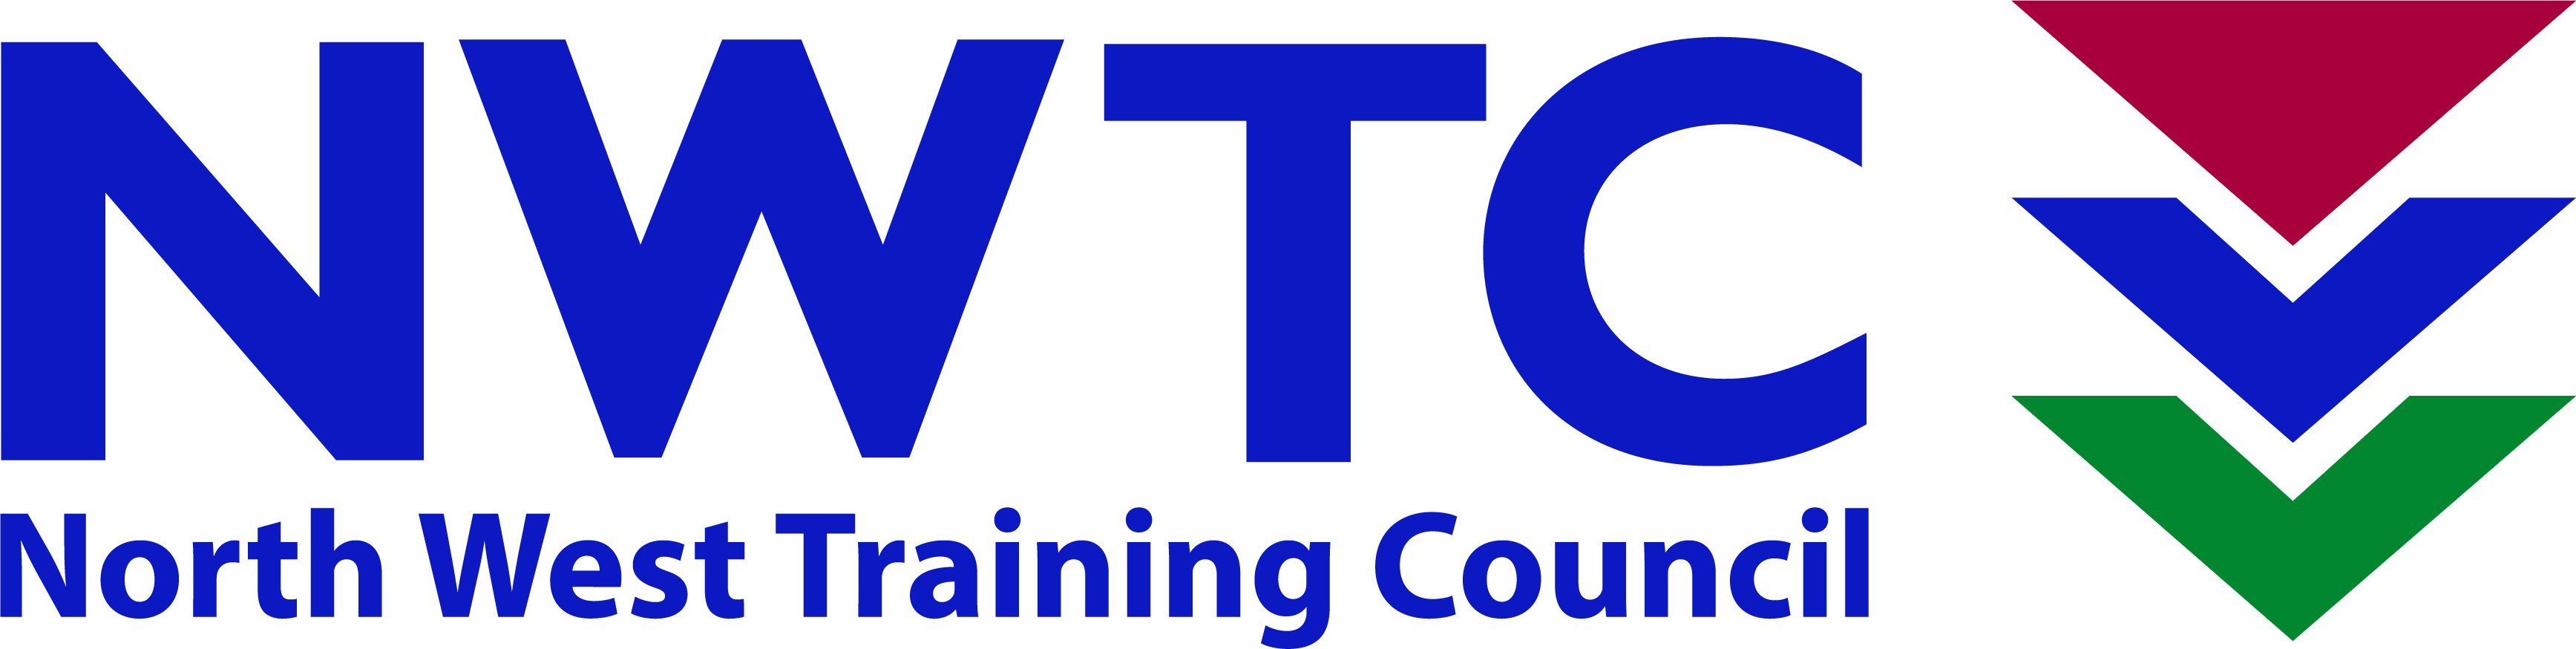 North West Training Council logo